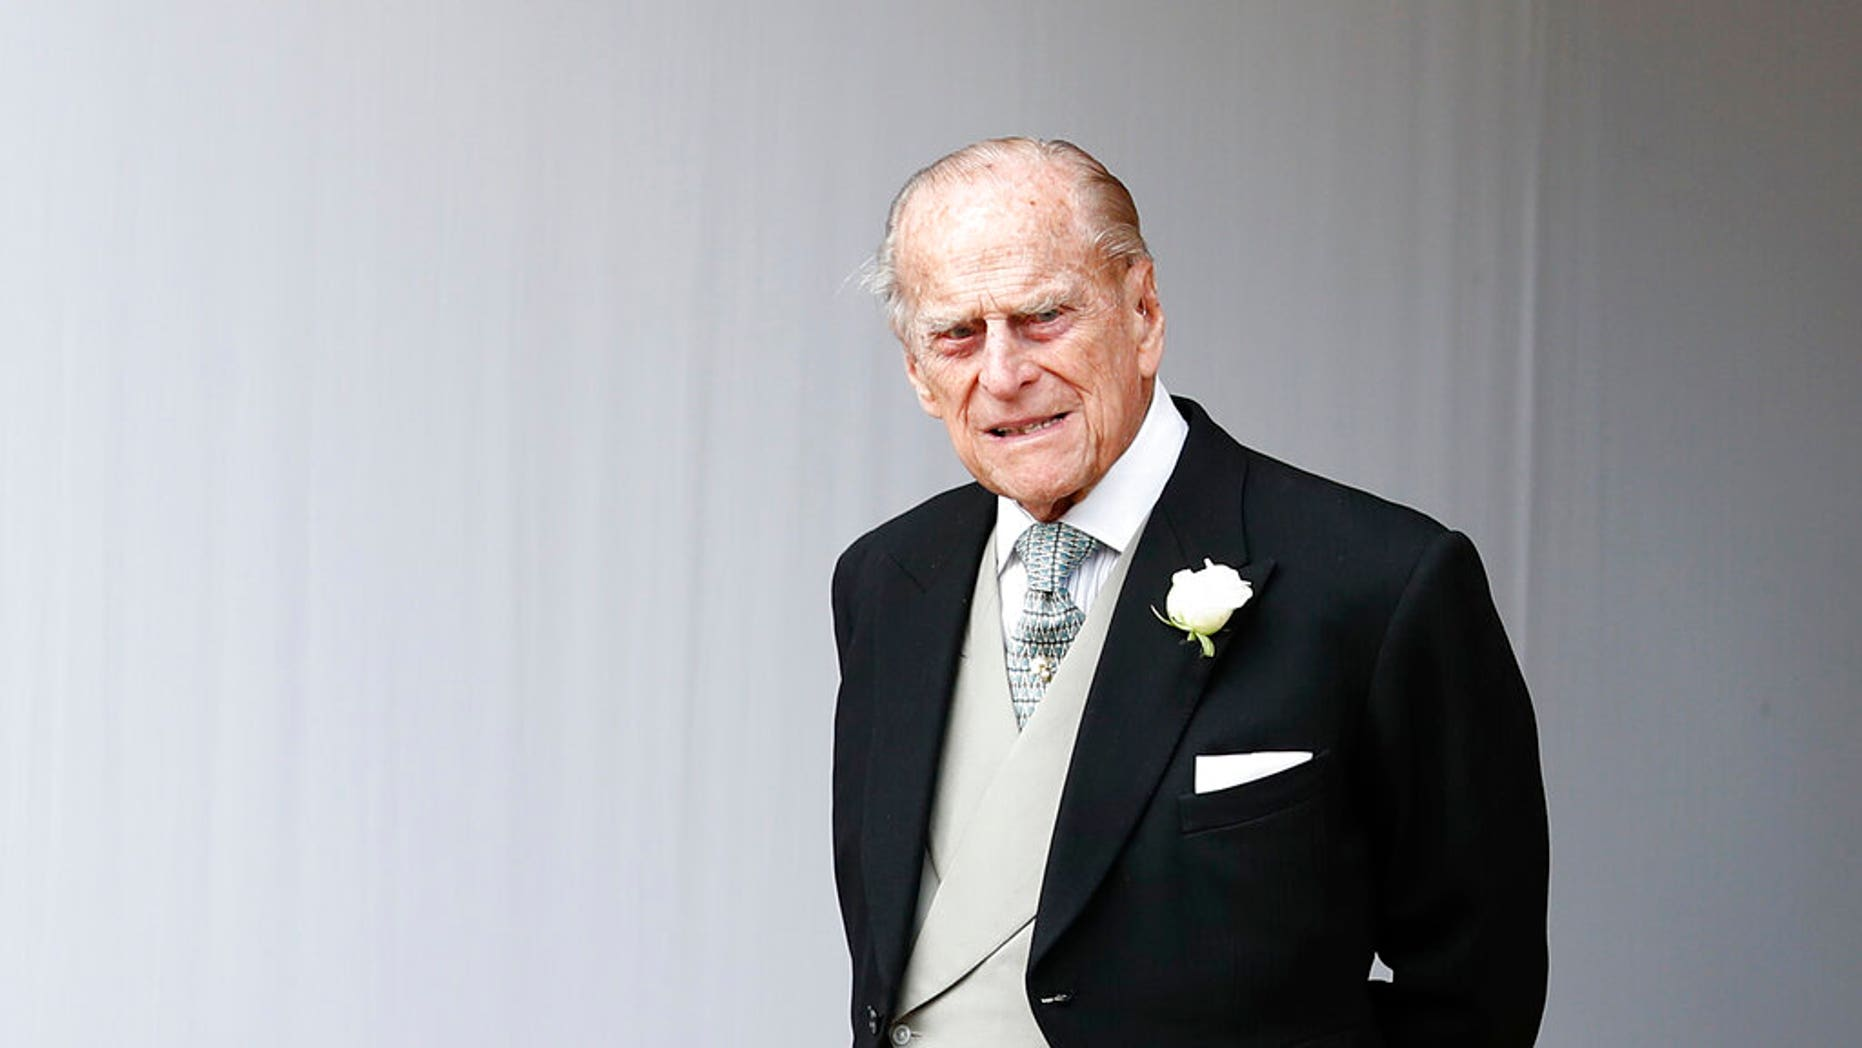 Prince Philip, pictured here in October 2018, was involved in a collision last month.  (AP Photo/Alastair Grant, Pool, File)